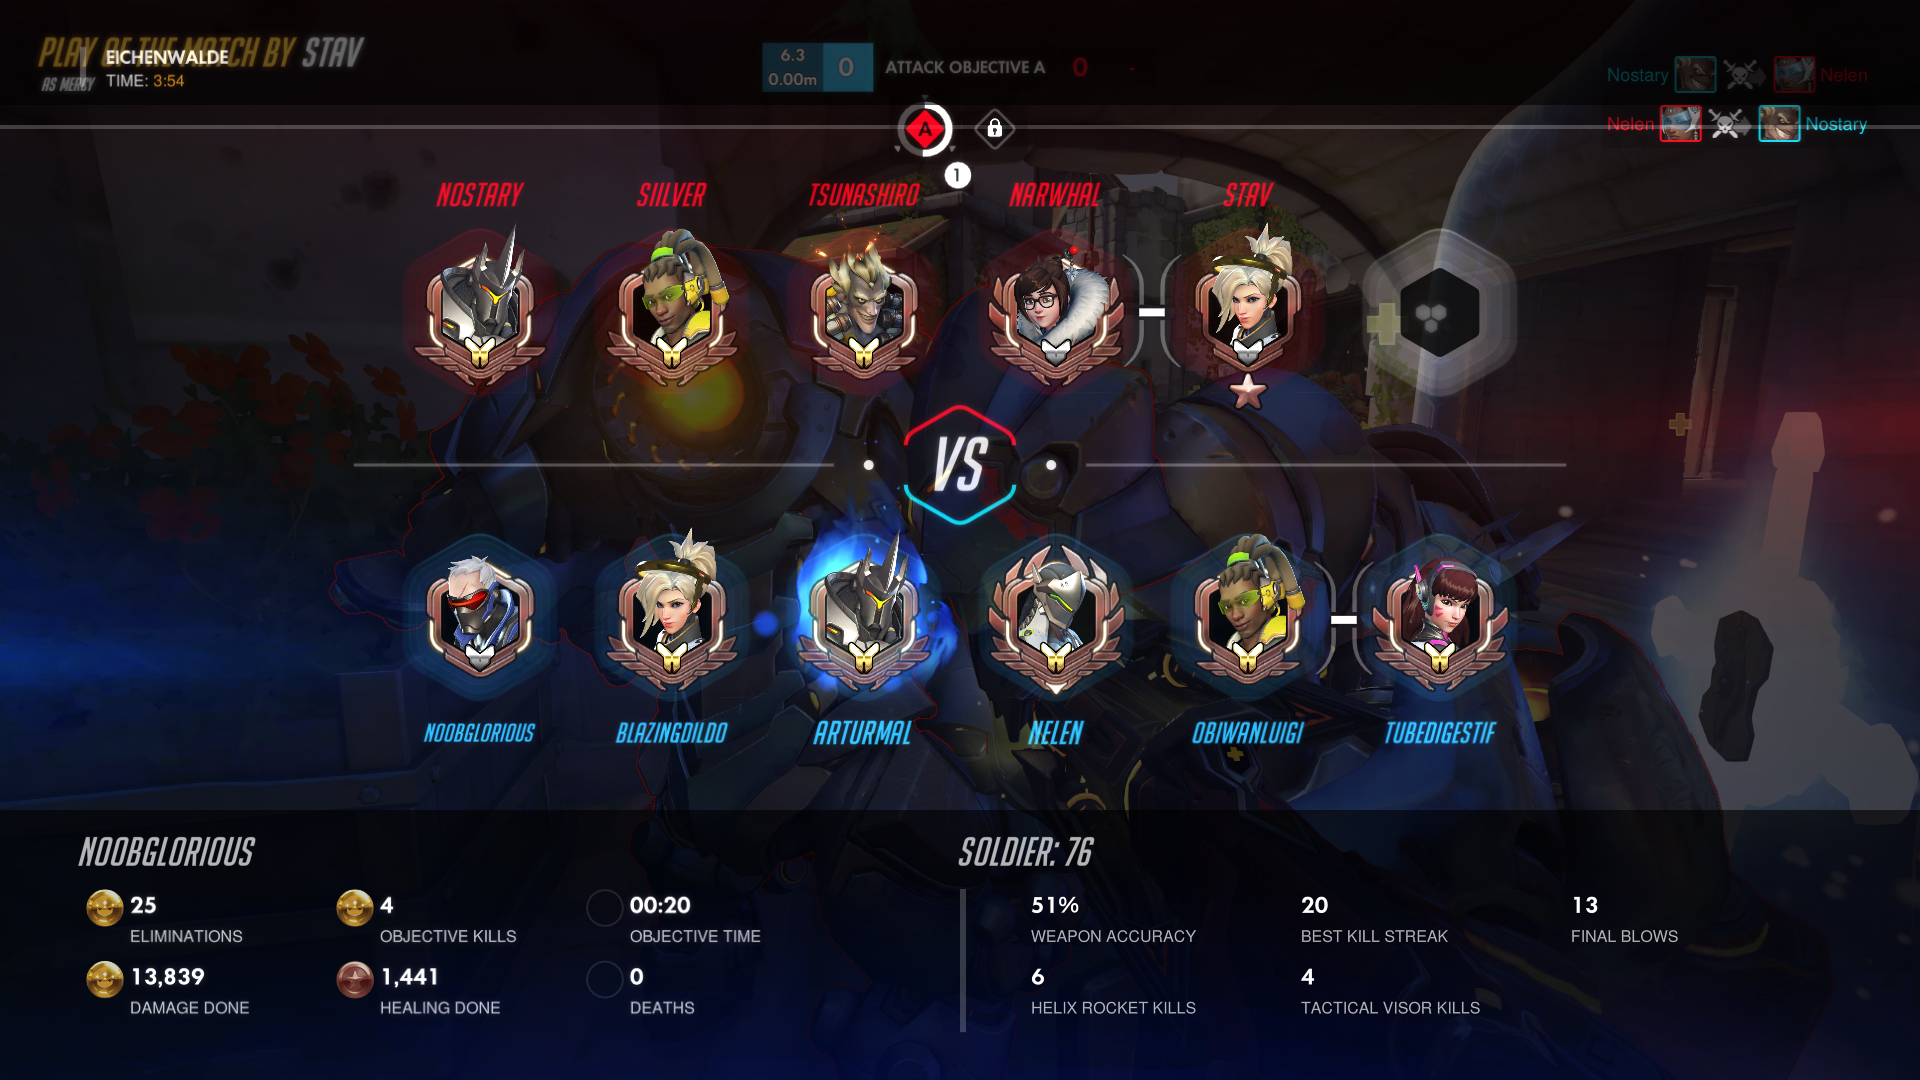 Lol matchmaking rigged